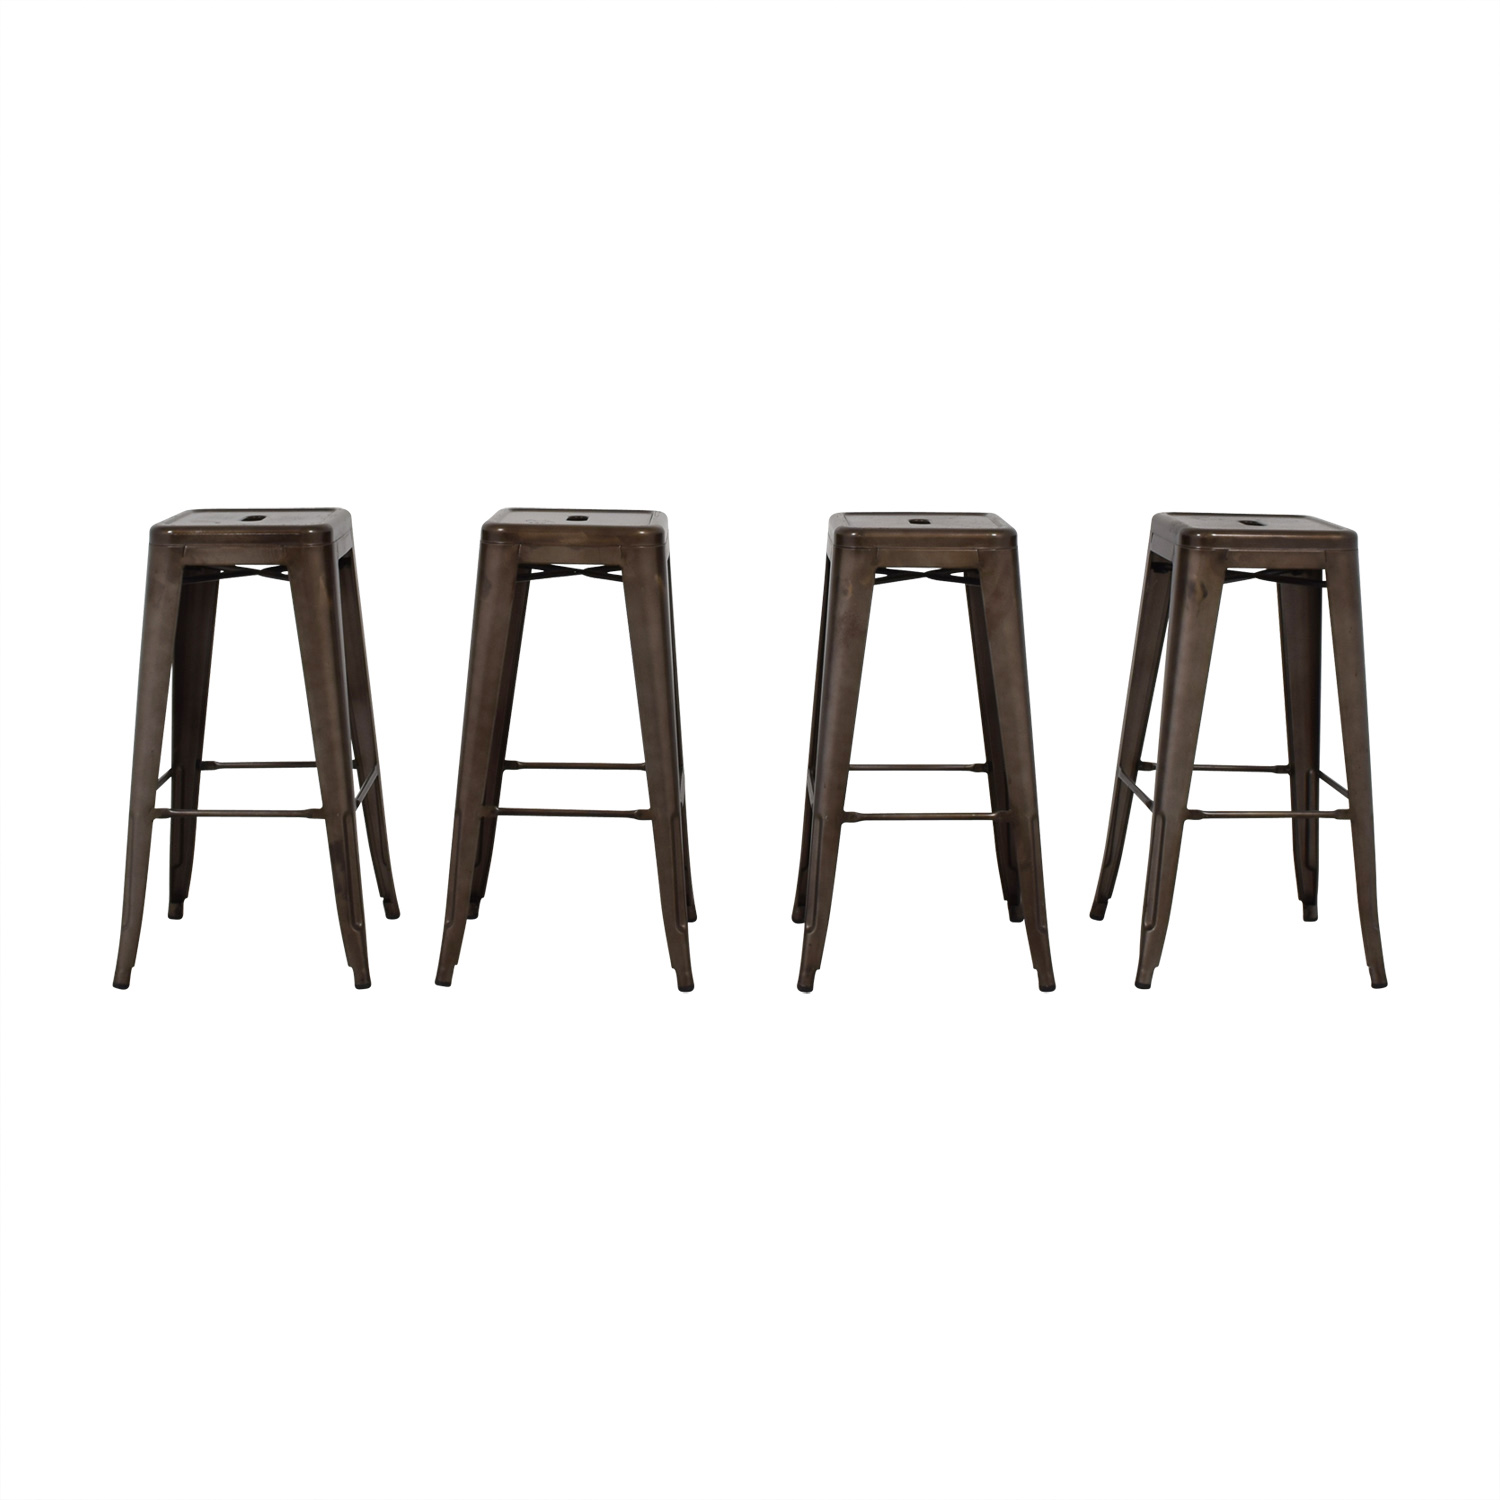 Tabouret-Style Industrial Rustic Distressed Metal Bar Stools